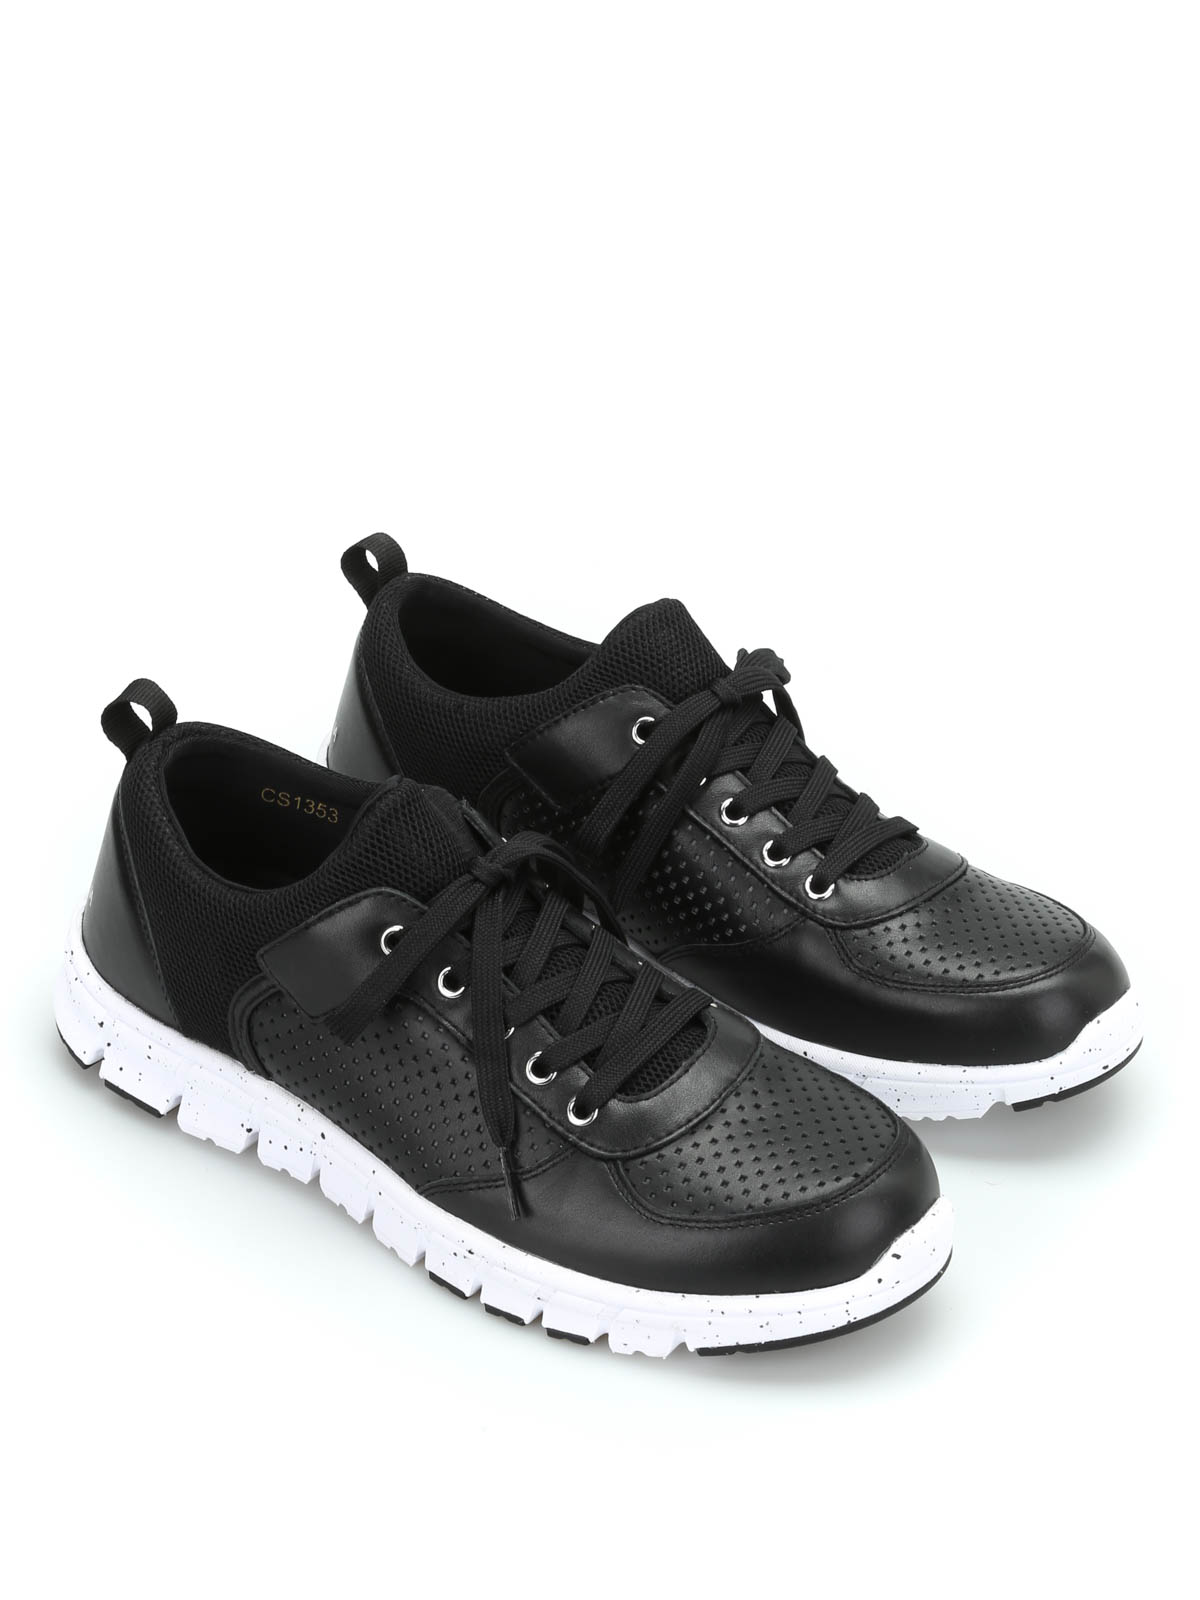 new jamaica sneakers by dolce gabbana trainers ikrix. Black Bedroom Furniture Sets. Home Design Ideas